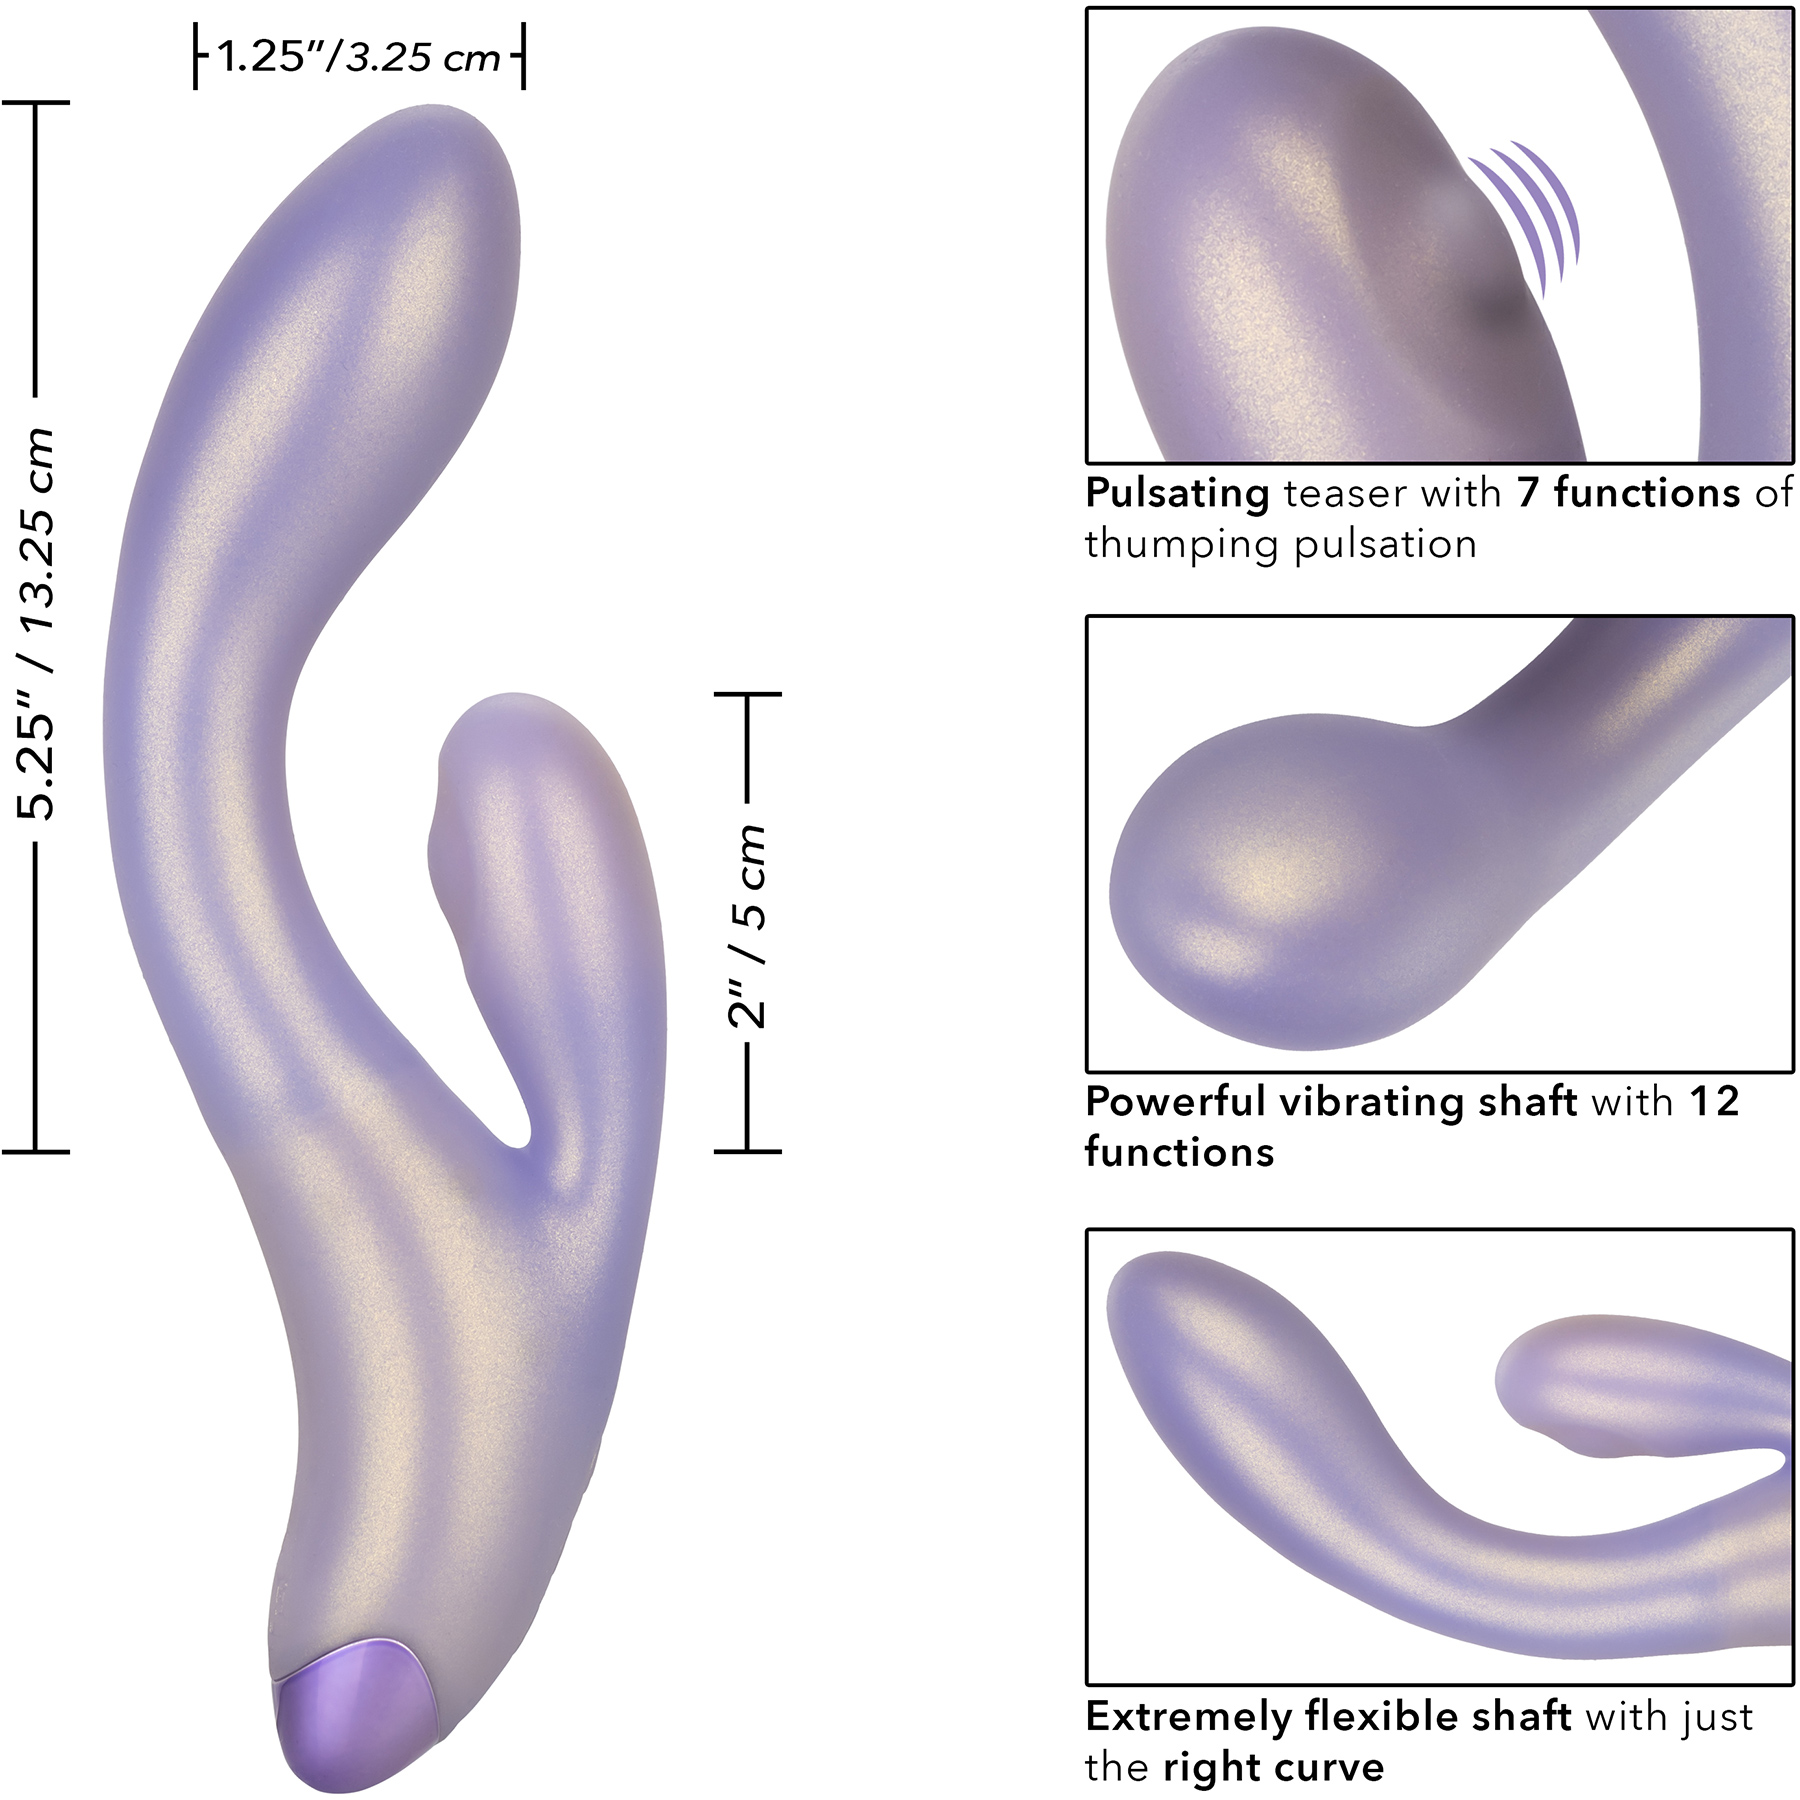 G-Love G-Thumper Silicone Rechargeable Waterproof Dual Stimulation Vibrator By CalExotics - Measurements